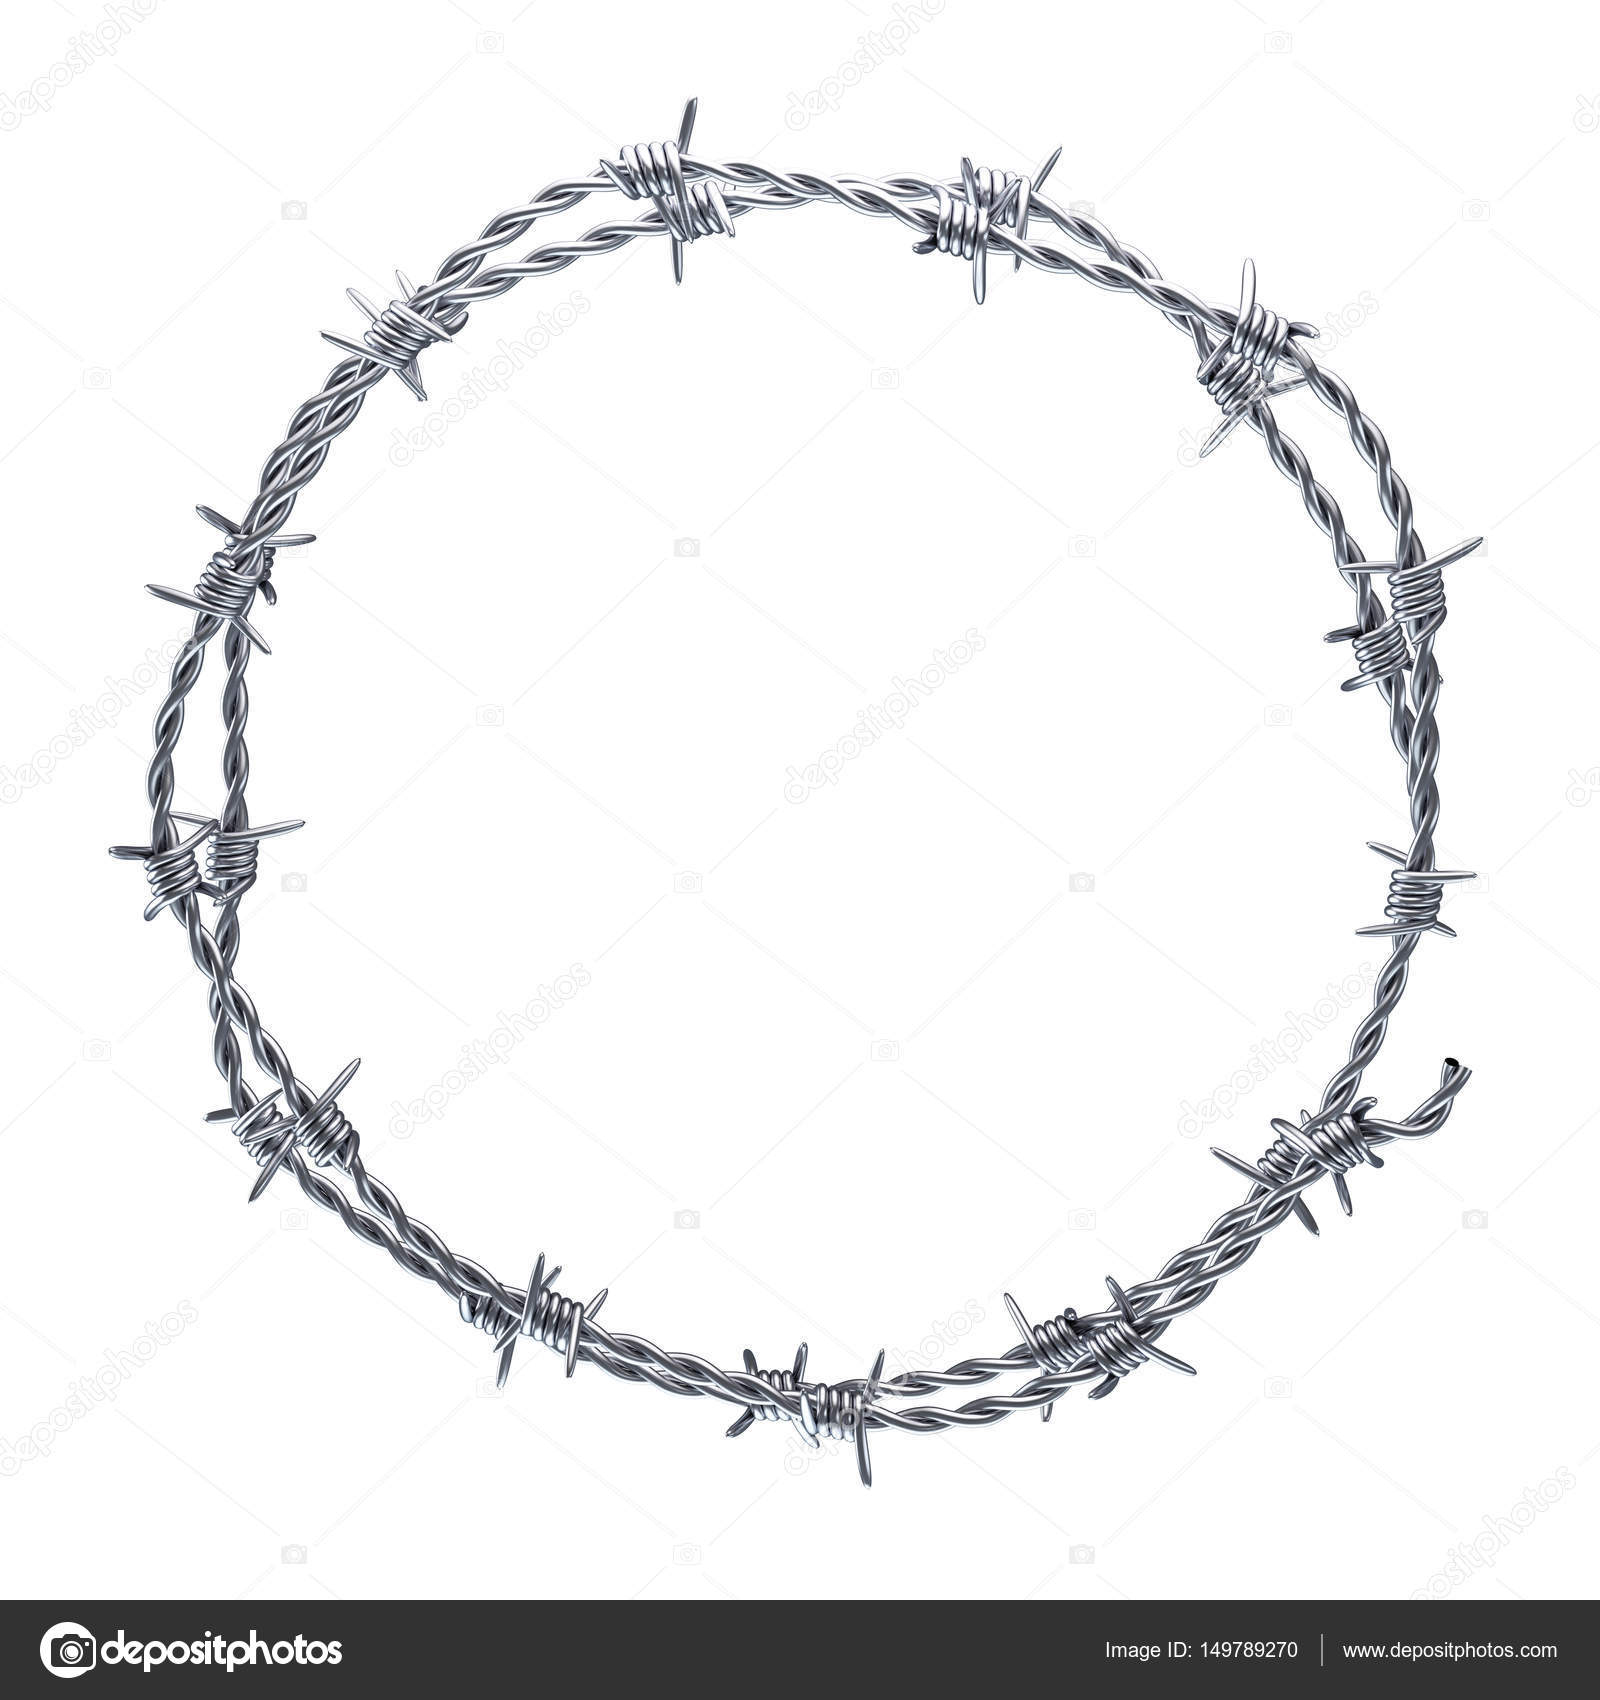 Barbed wire wreath — Stock Photo © julydfg #149789270